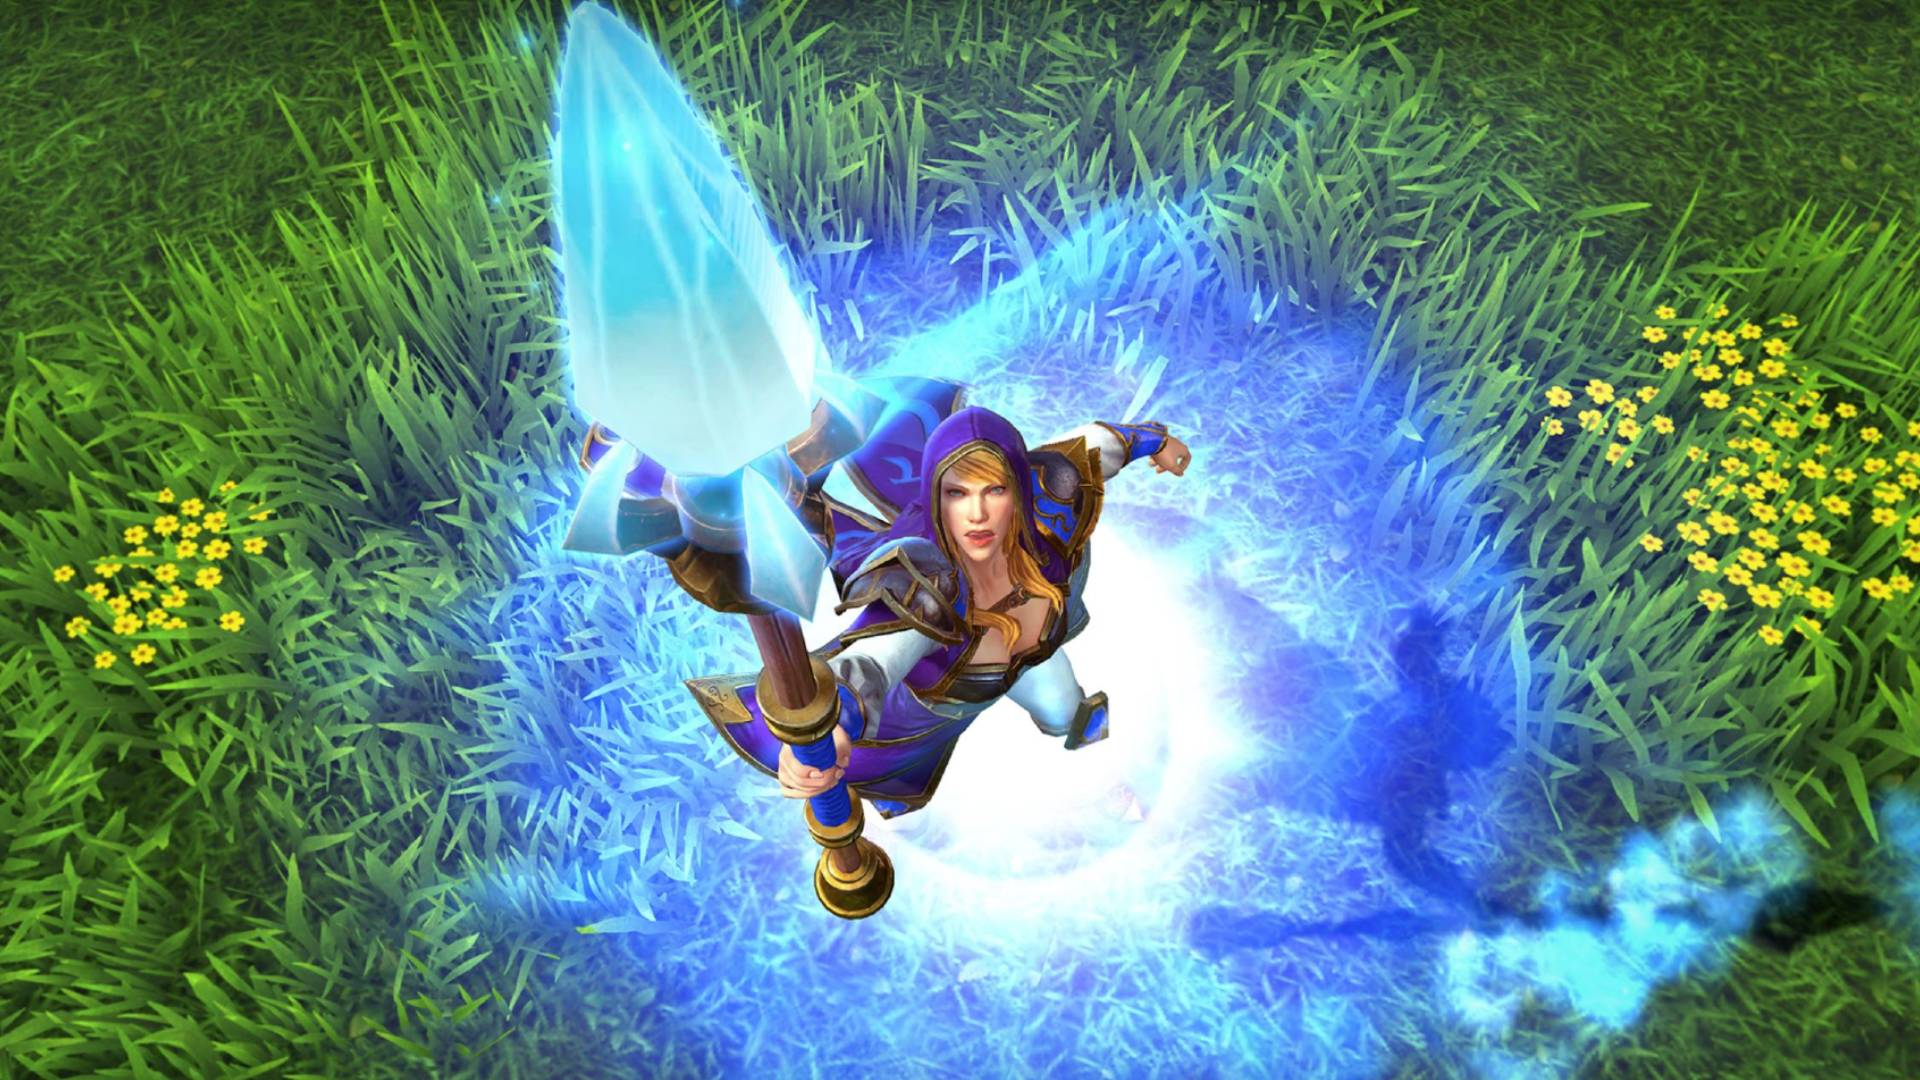 Warcraft 3 Reforged Heroes A Complete List Of All Hero Units